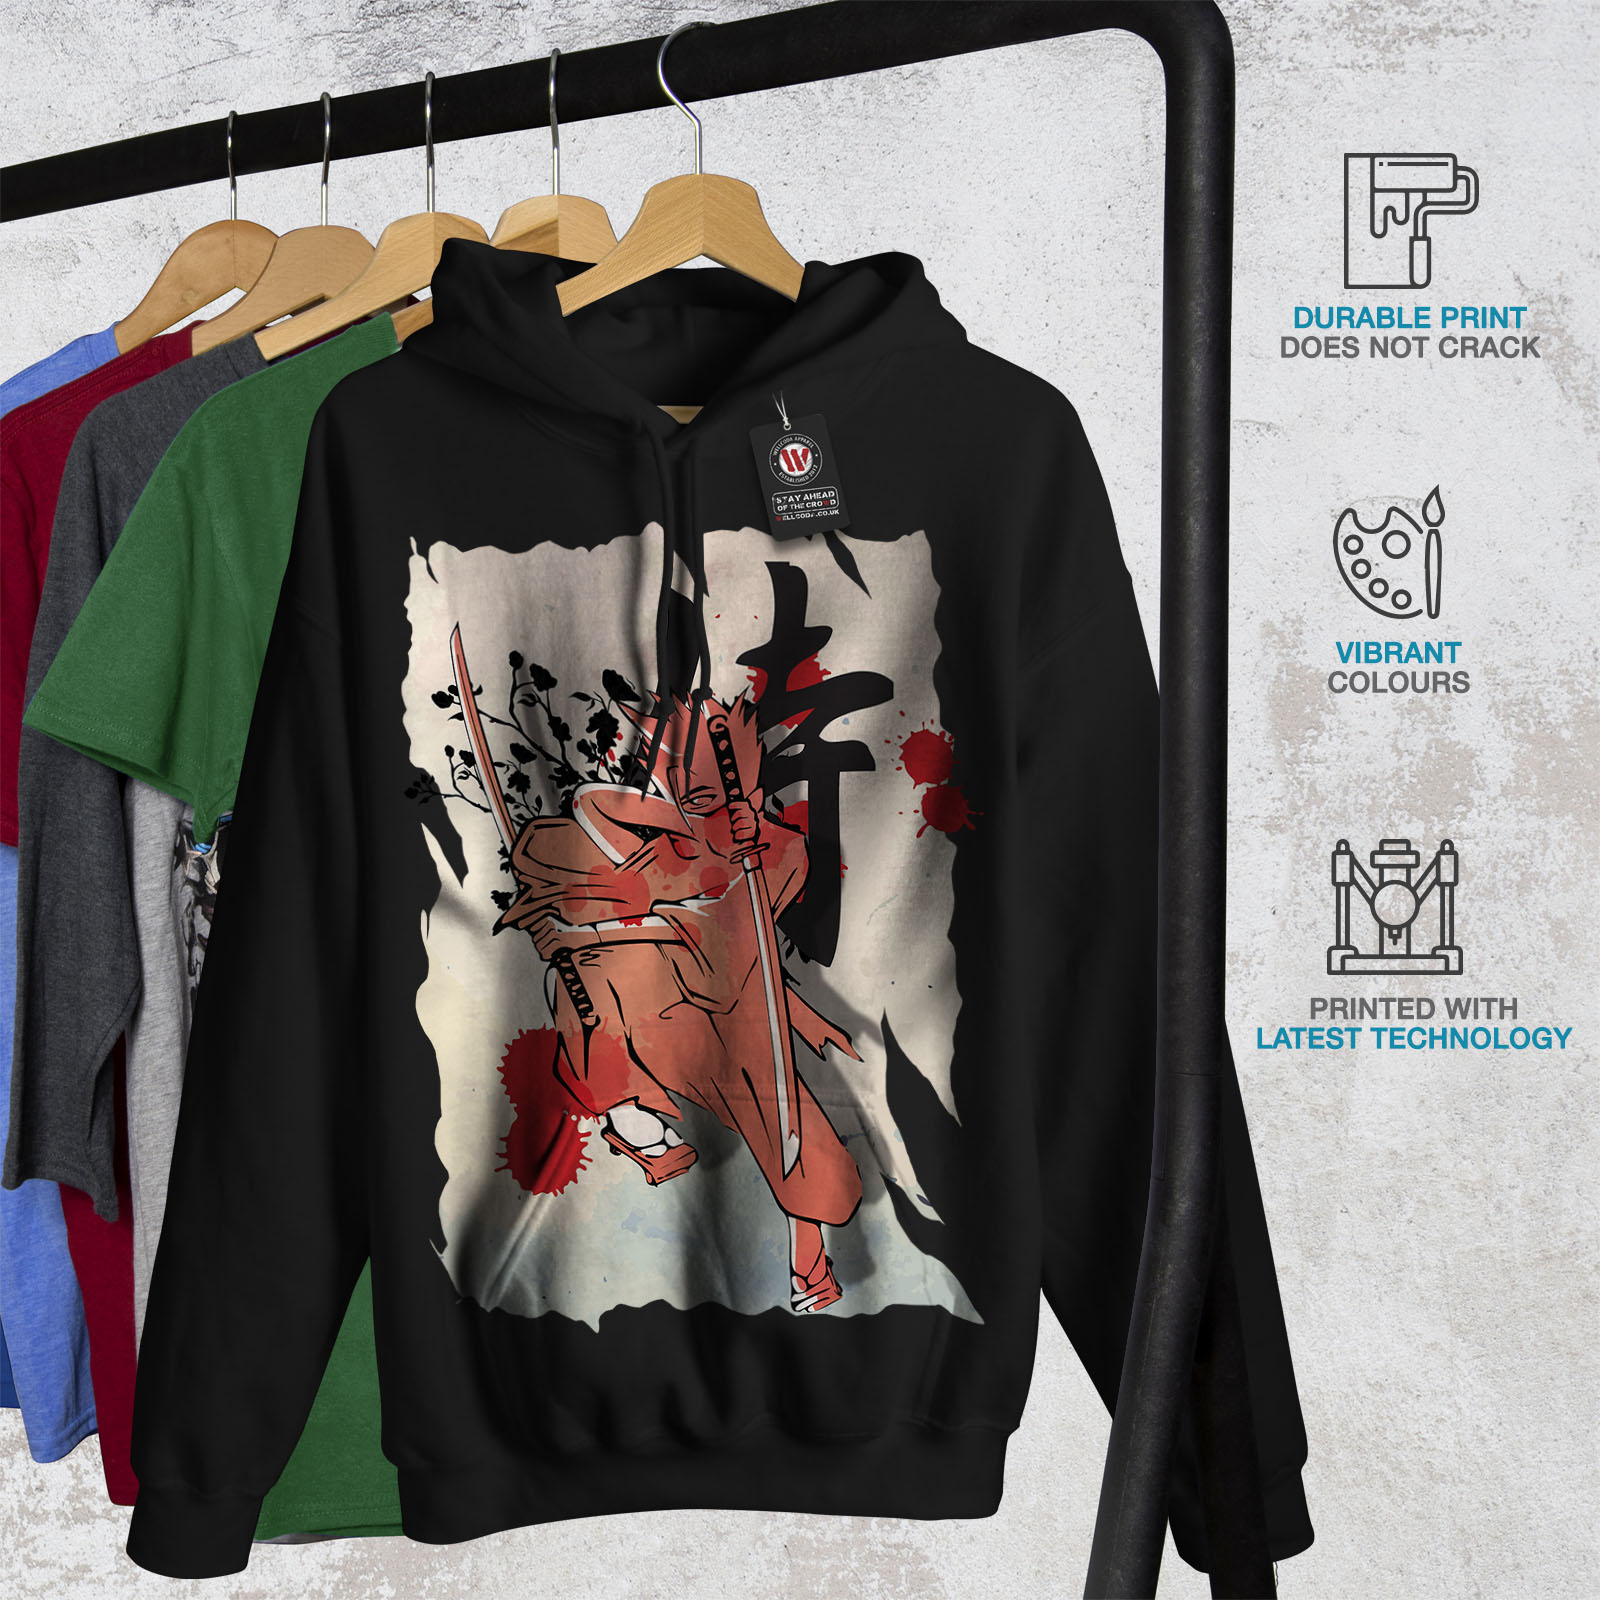 Anime Hooded Sweatshirt Black Hoodie Mens New Casual Wellcoda t7Xq1R4t